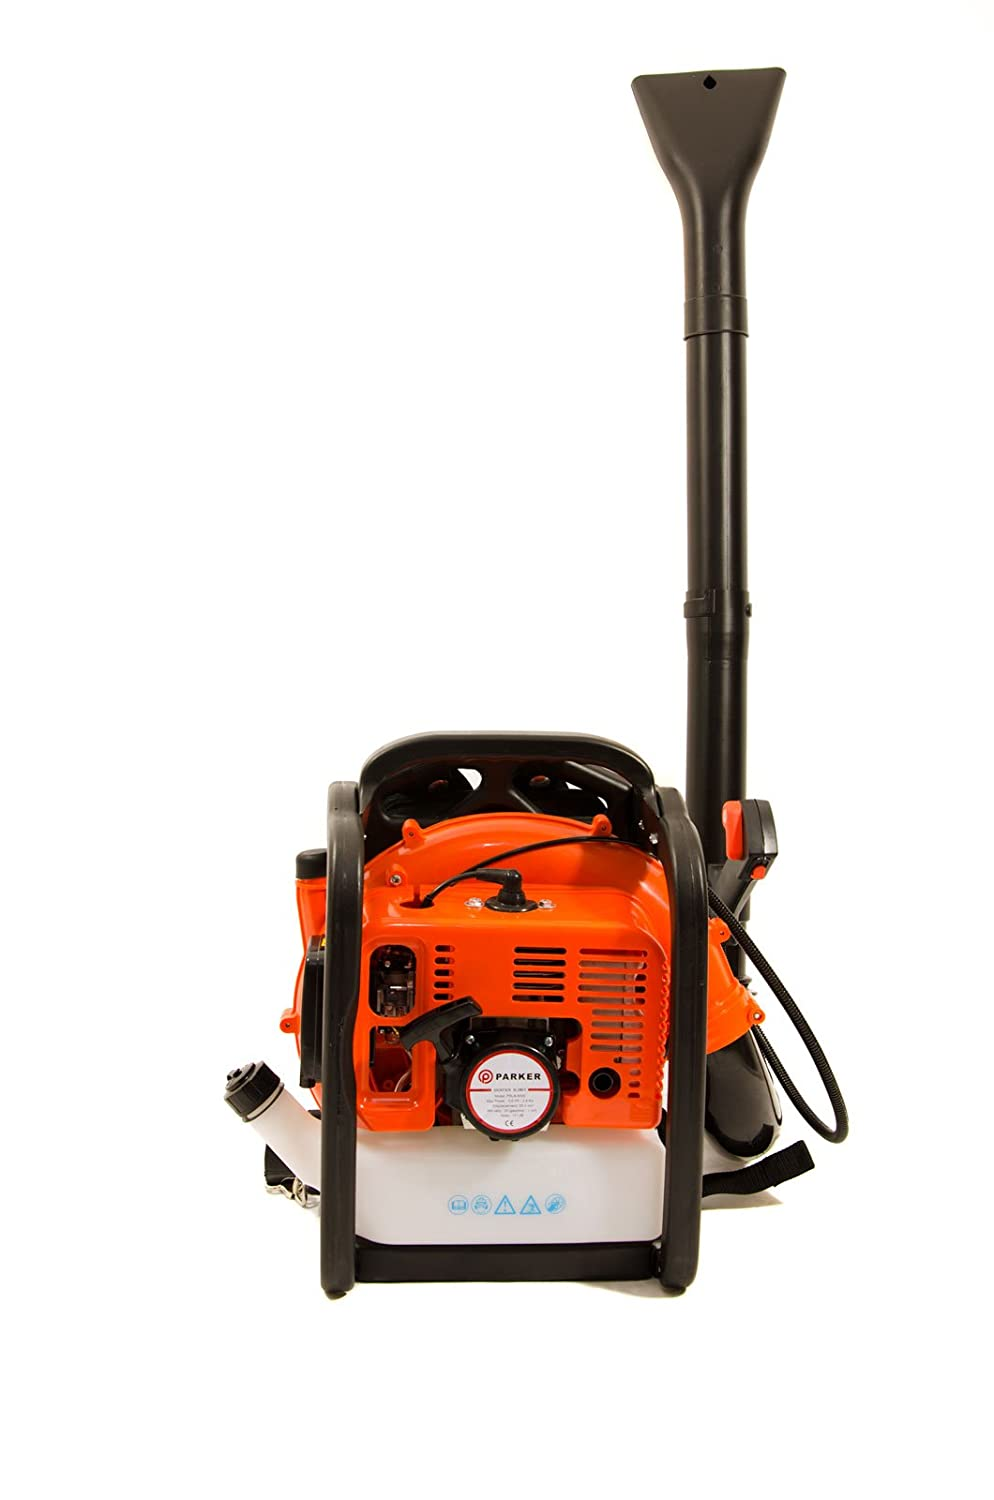 65cc Petrol Backpack Leaf Blower, Extremely Powerful - 210MPH Parker